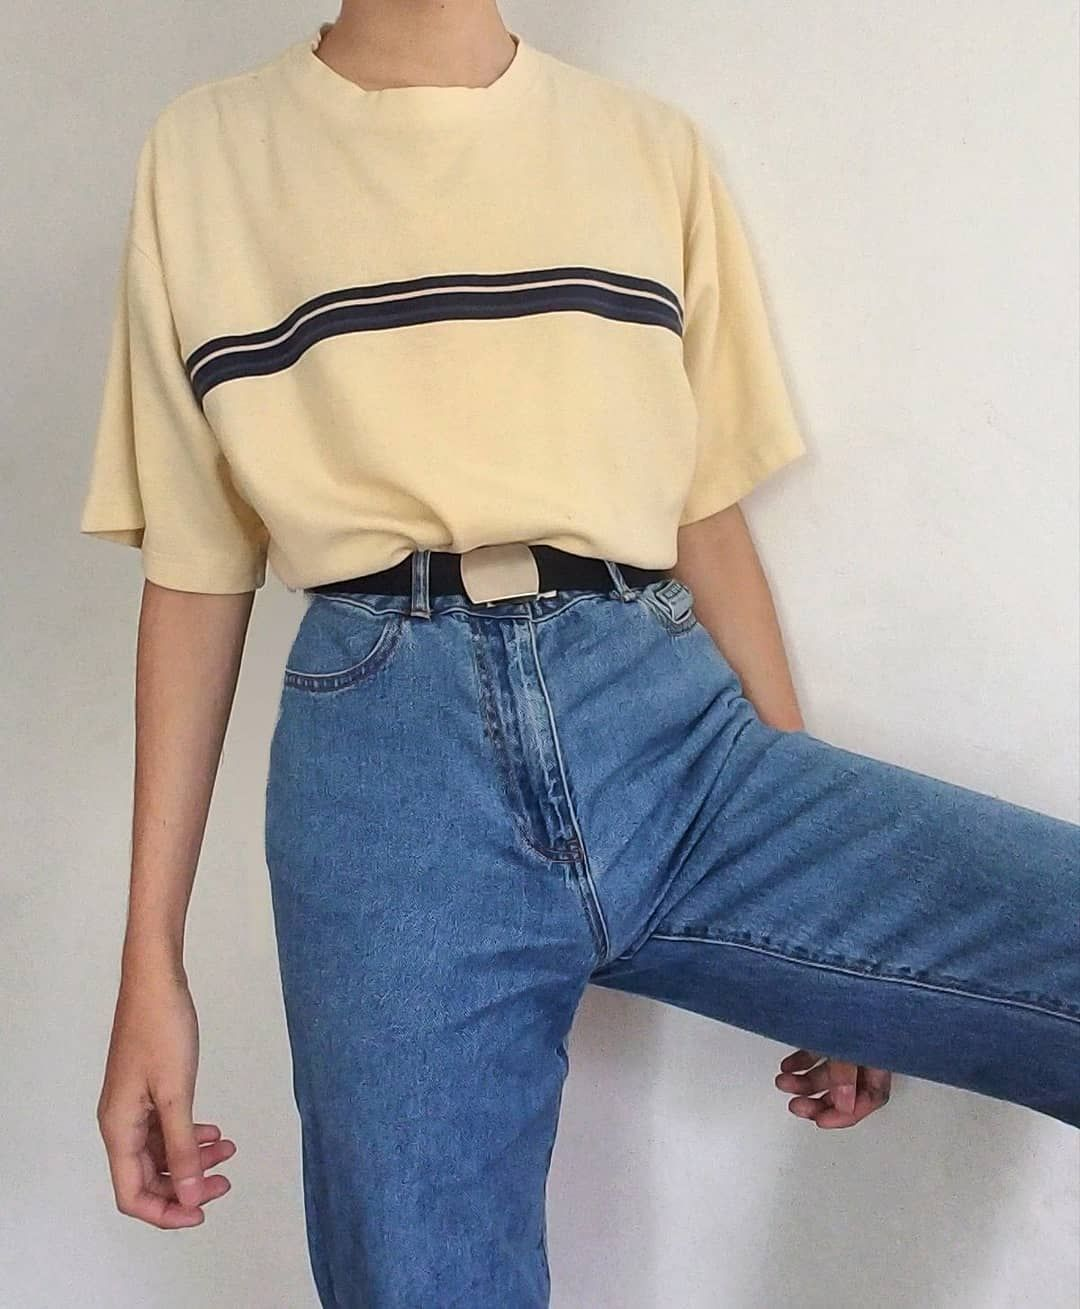 18961c5abf 80s #90s #fashion #vintage #retro #aesthetic | STYLE // in 2019 ...